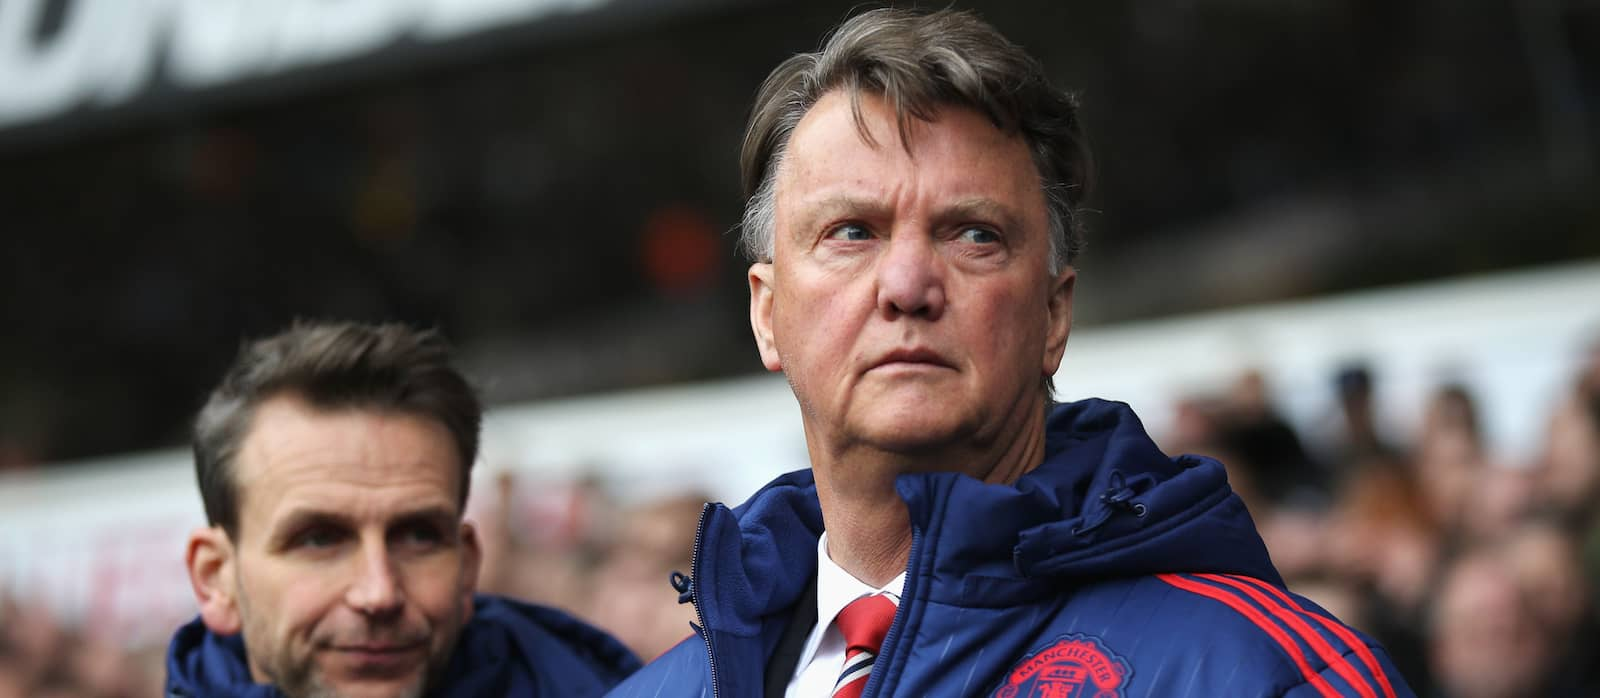 LIVE: Man United news, transfers and gossip – Man United set to axe van Gaal this summer?